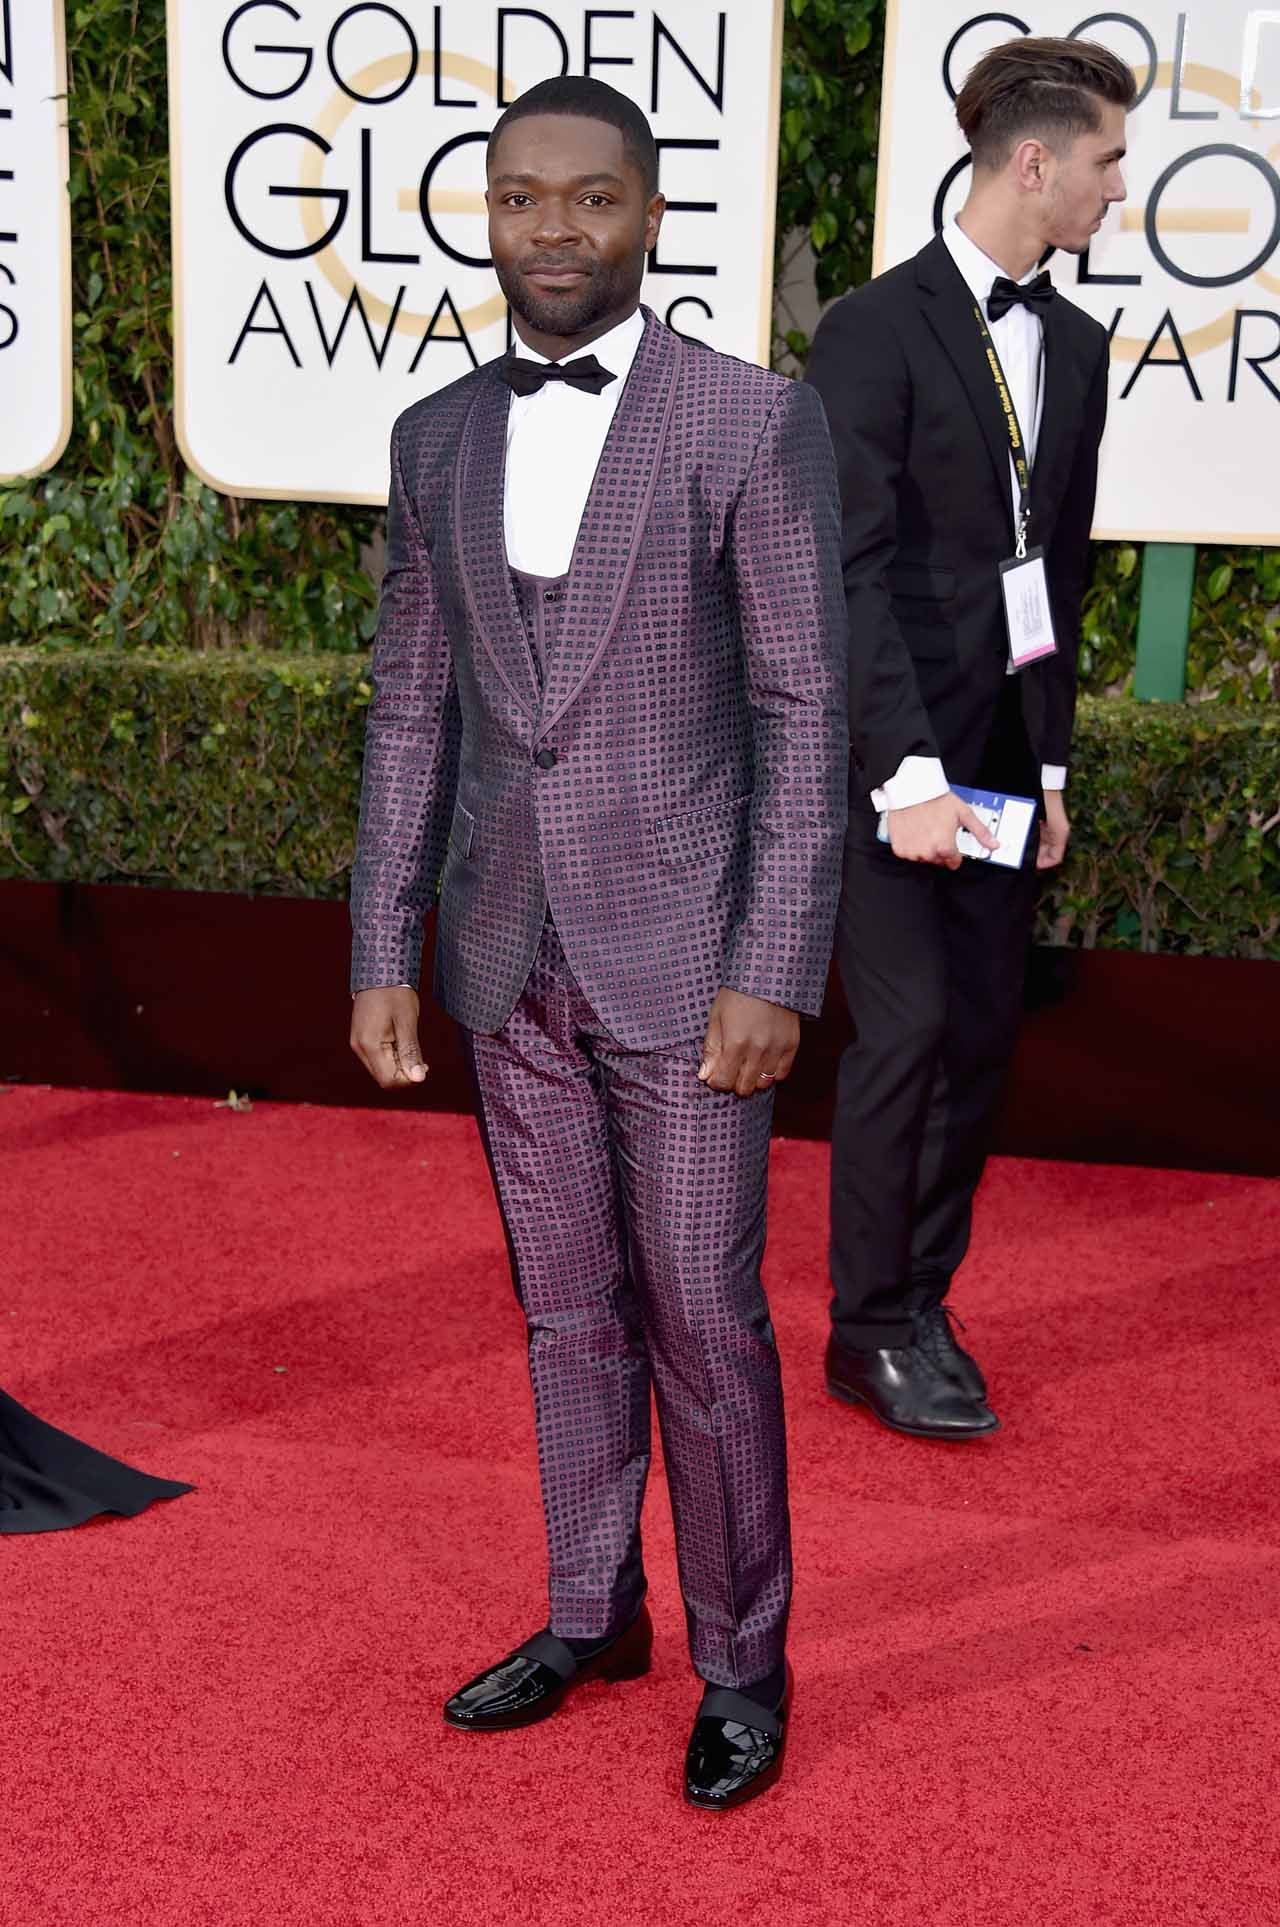 Image result for David Oyelowo IN DOLCE & GABBANA AT THE 2016 GOLDEN GLOBES